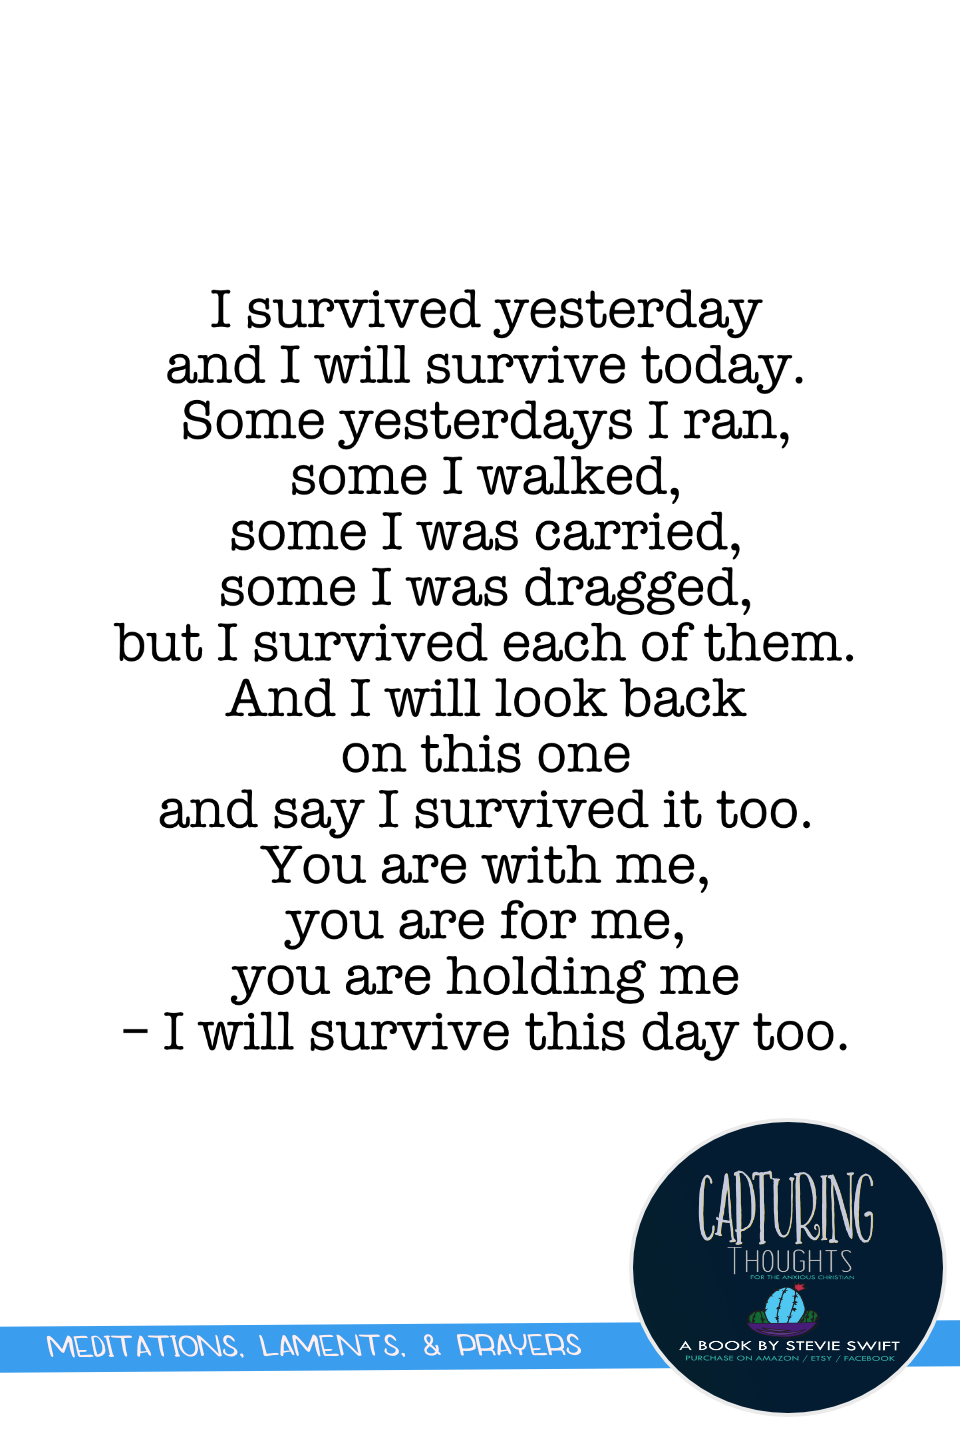 i survived yesterday and i will survive today. some yesterdays i ran, some i walked, some i was carried, some i was dragged, but i survived each of them. and i will look back on this one and say i survived it too. you are with me and you are for me.